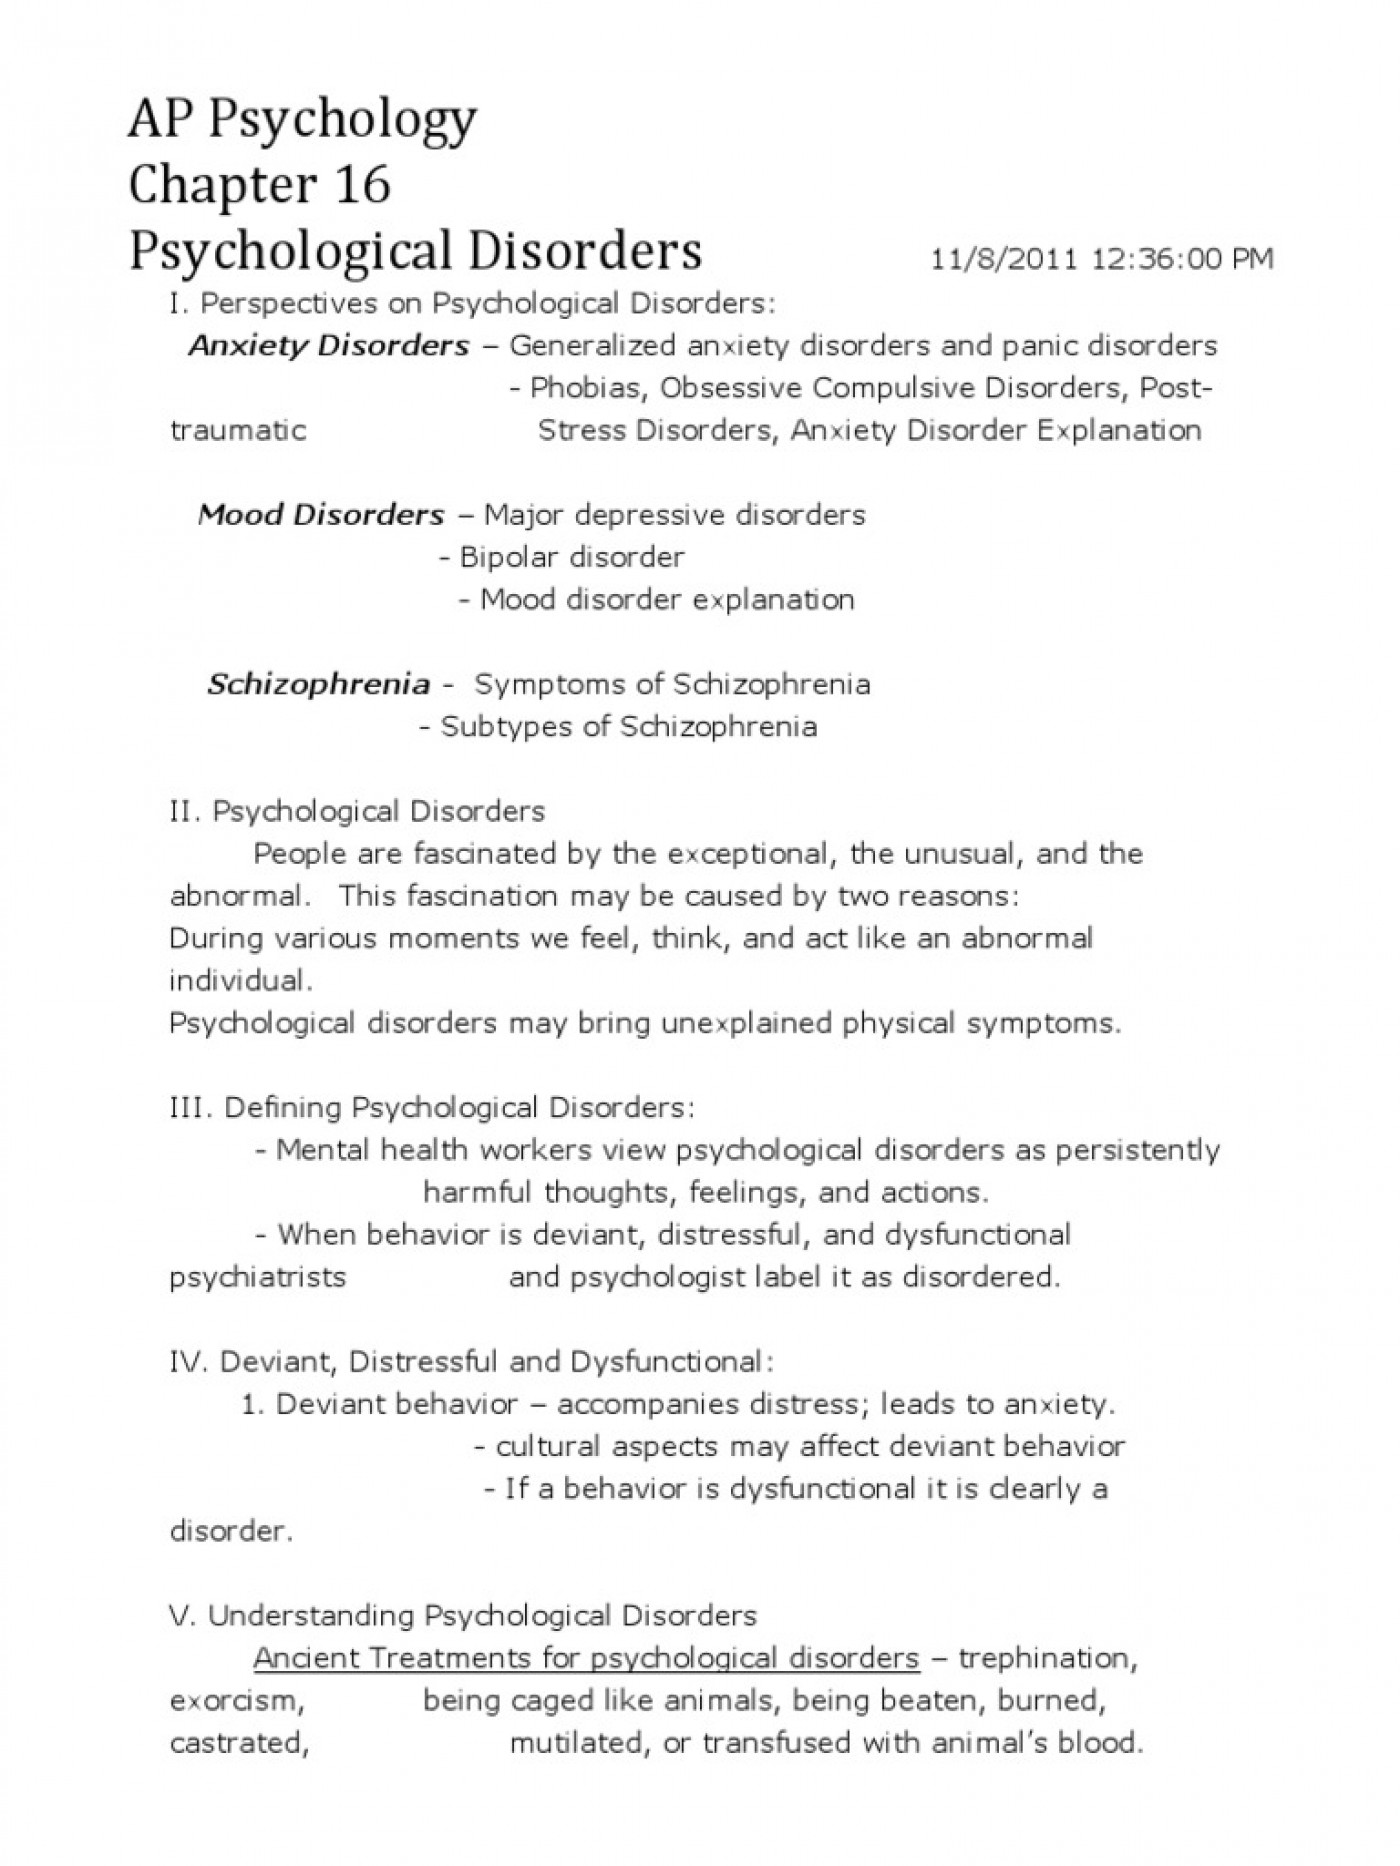 010 Bipolar Disorder Essay Topics Title Pdf College Introduction Question Conclusion Examples Outline Research Paper Psychology Awesome Students 1400